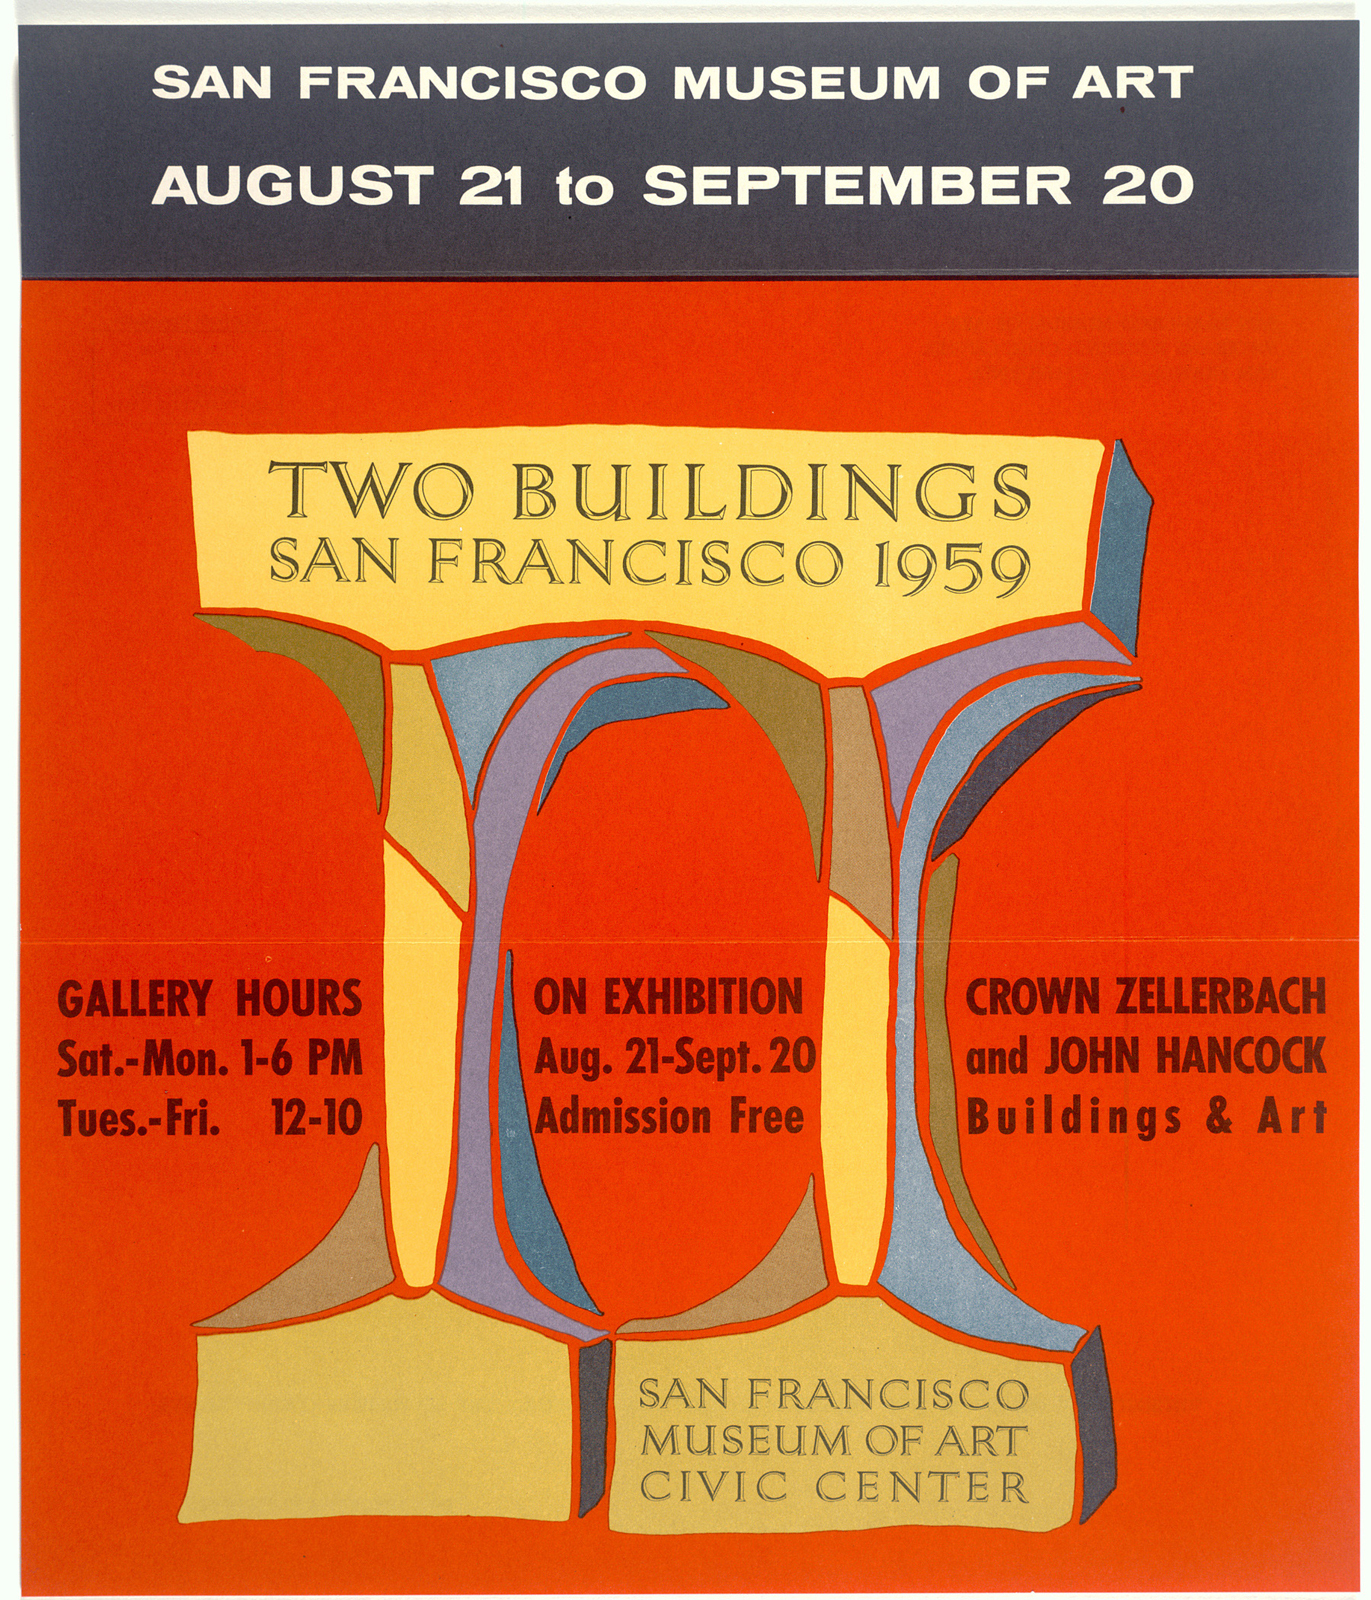 Two Buildings: San Francisco 1959 exhibition mailer